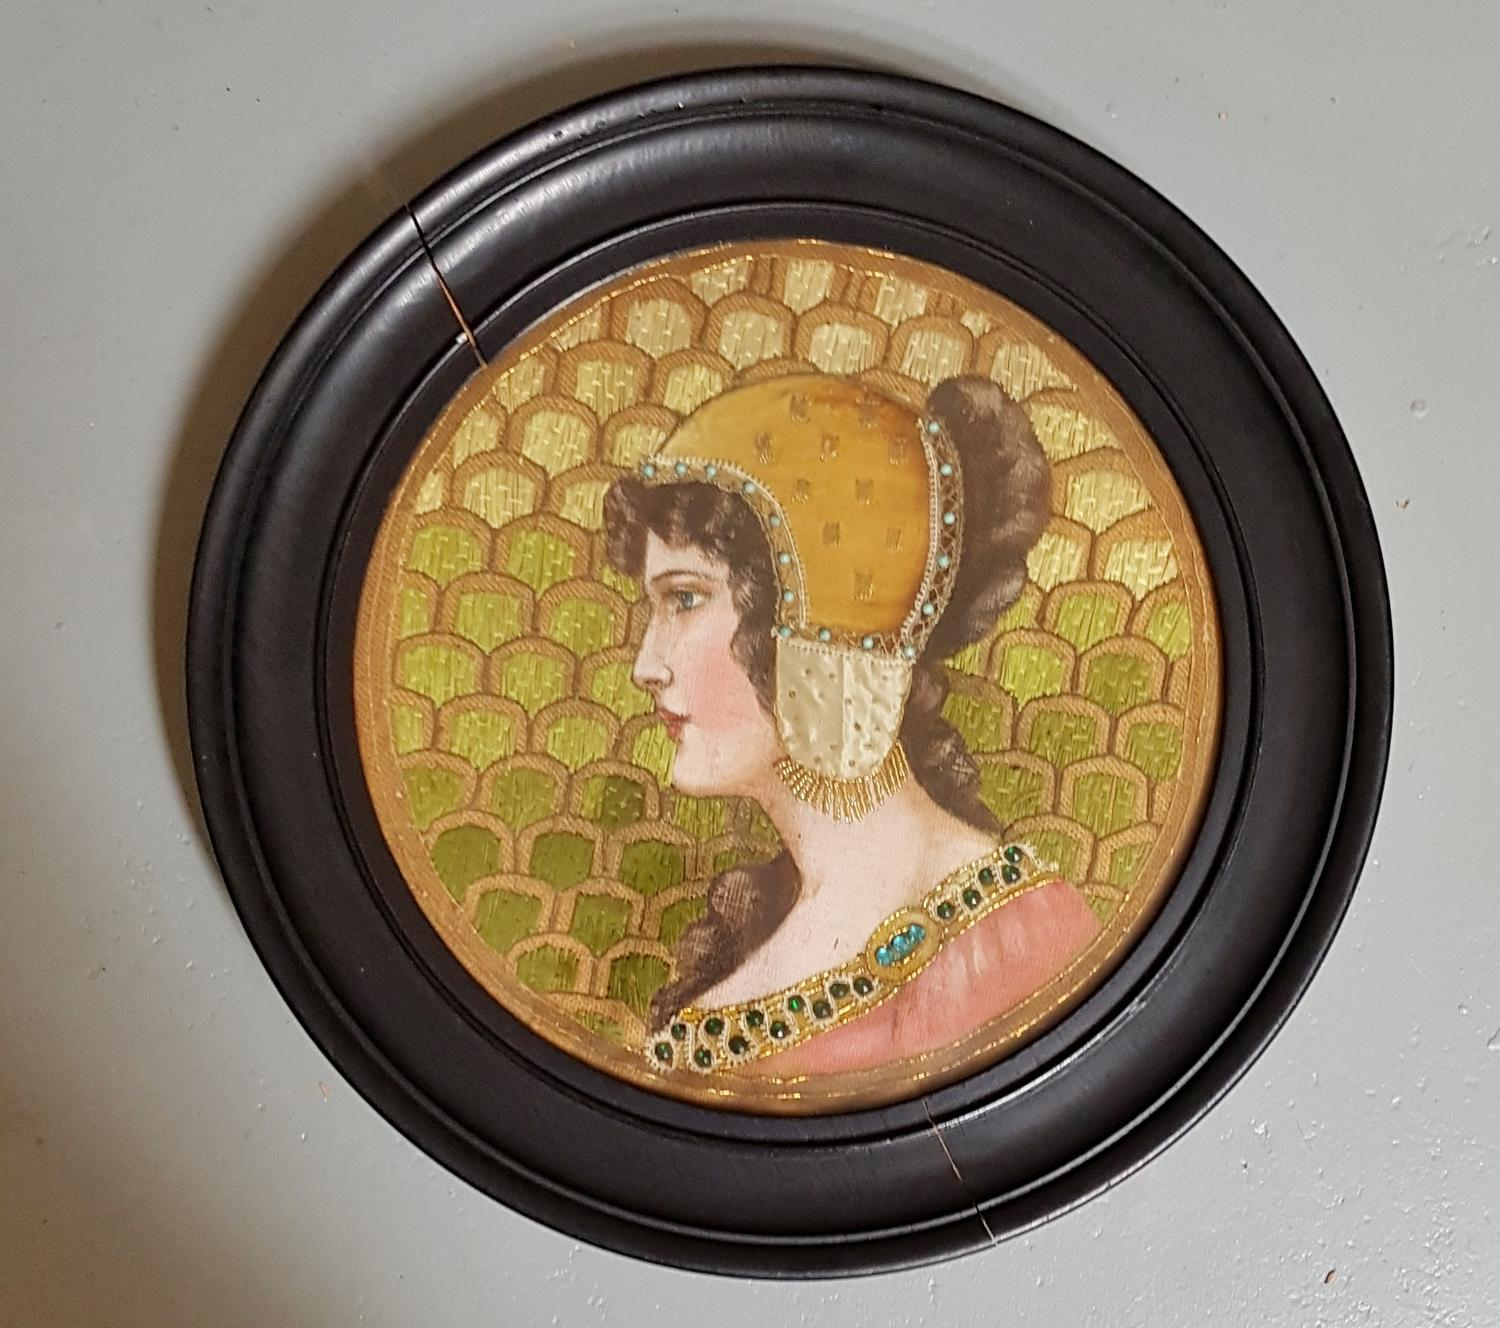 Arts & Crafts mixed media portrait needlework